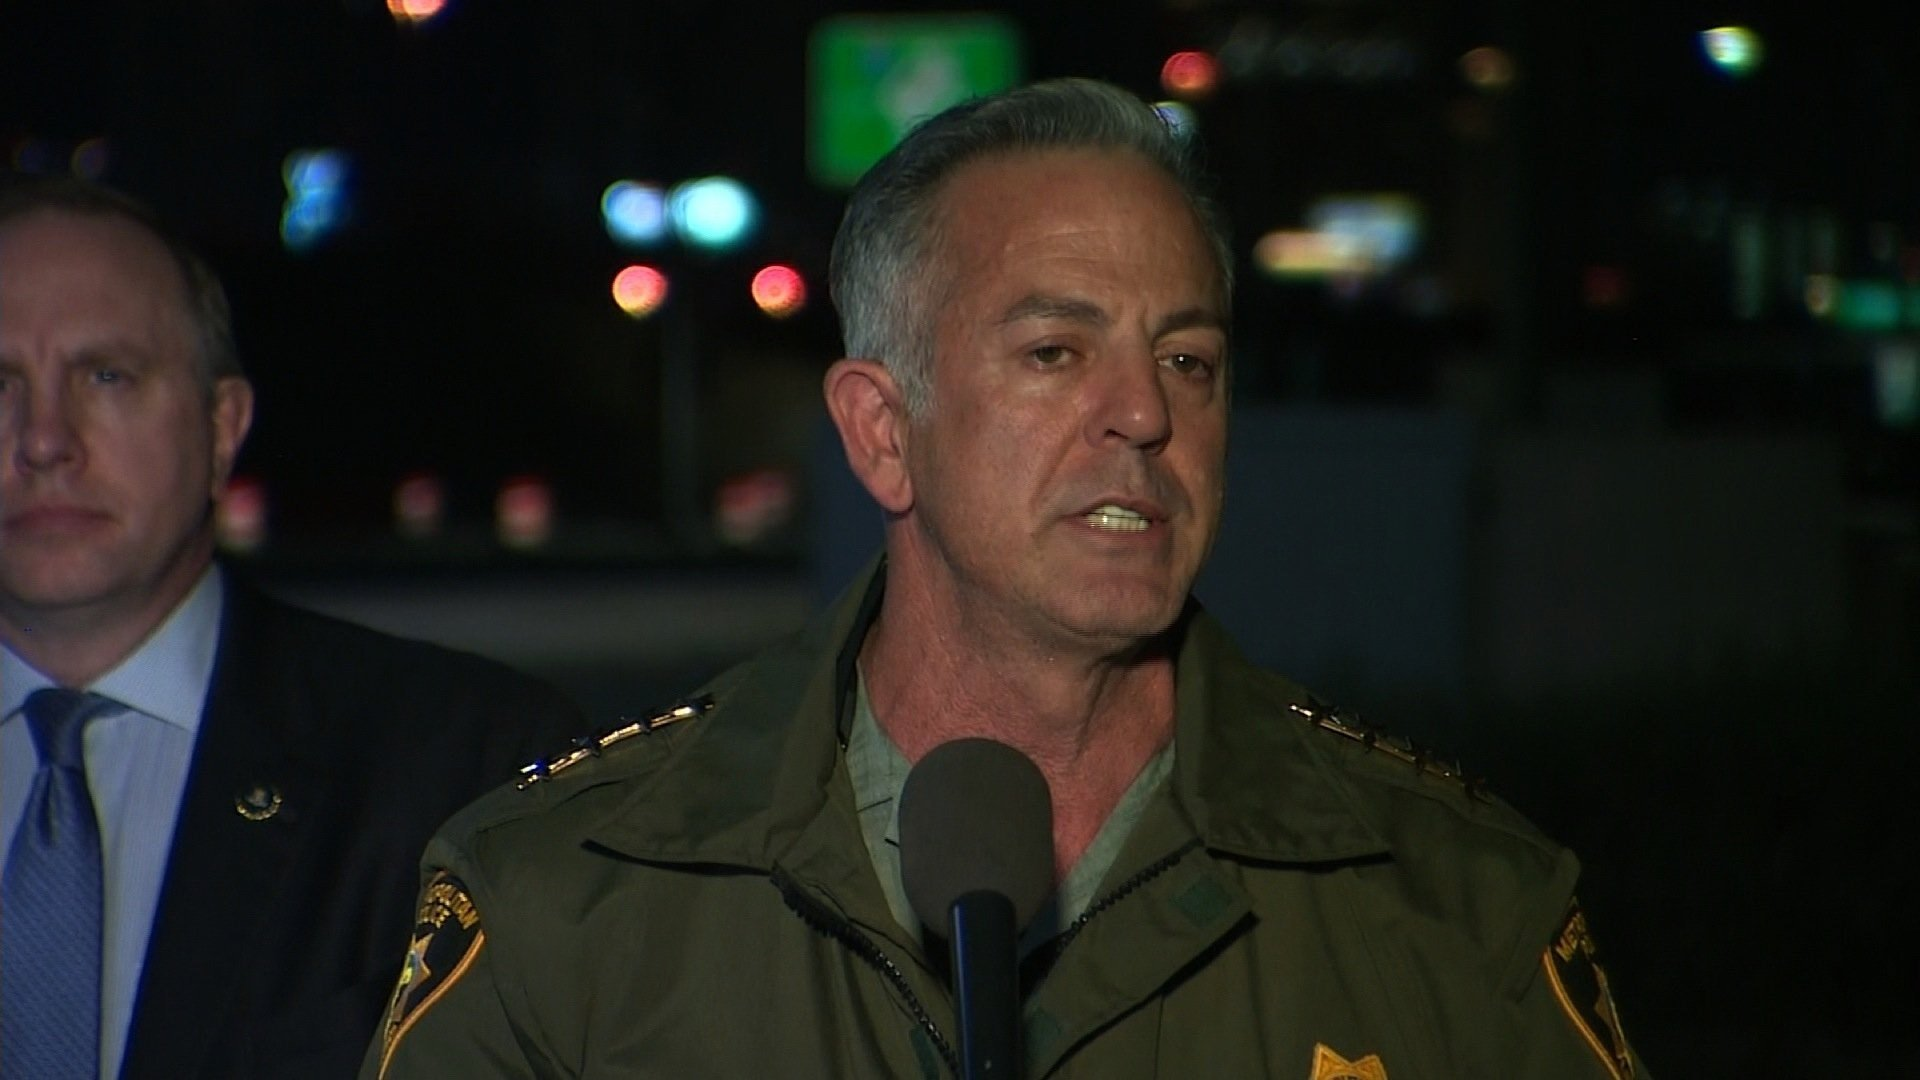 Las Vegas Sheriff Joseph Lombardo gives out details on the mass shooting in on the Las Vegas Strip